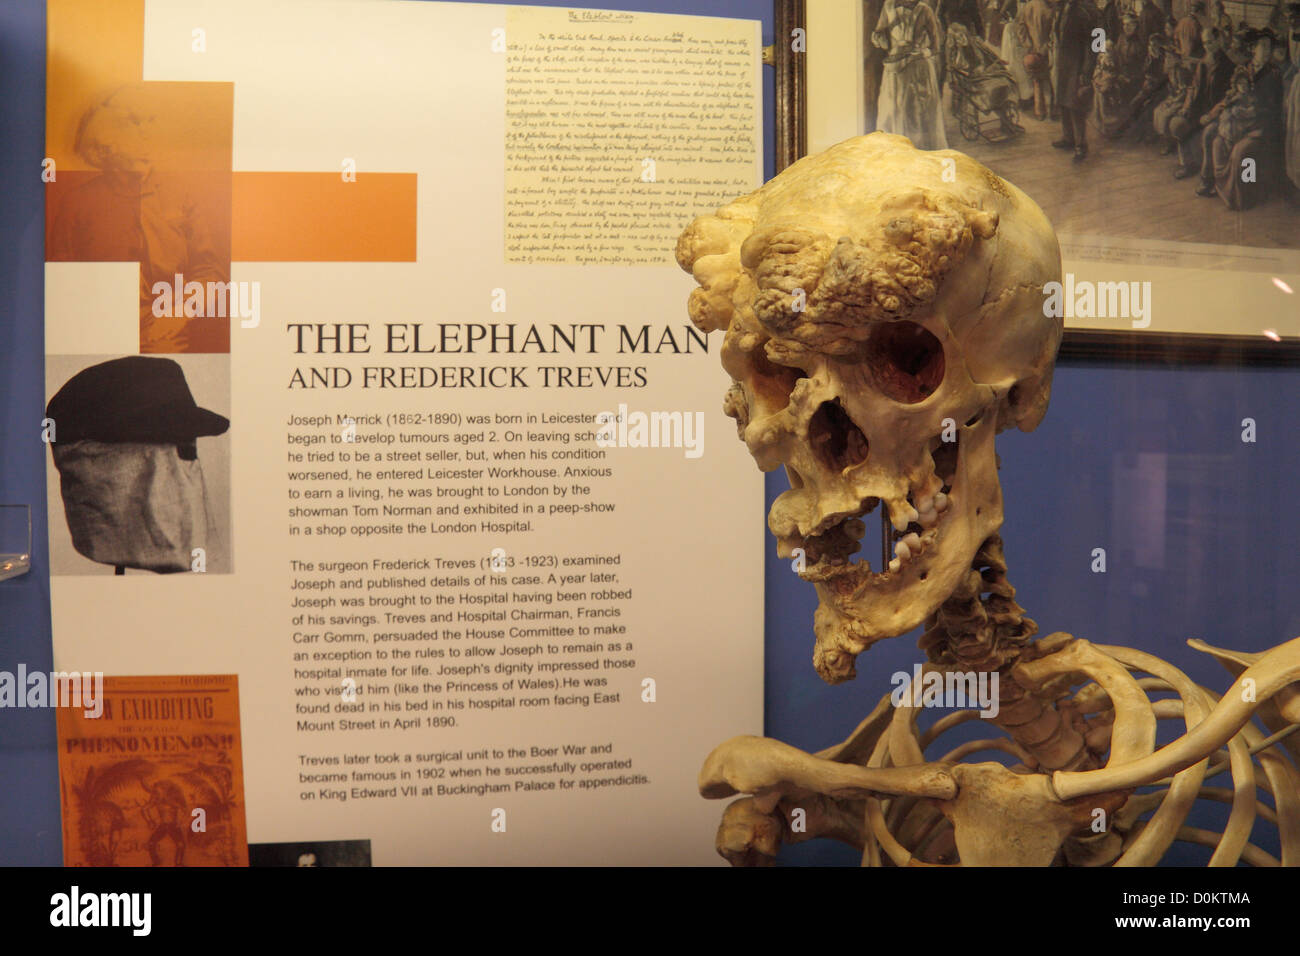 themes joseph merrick and elephant man Analysis of the elephant man  neurofibratosis, the condition from which joseph merrick suffered (legendre 6) caused him great pain and immense self-hate.